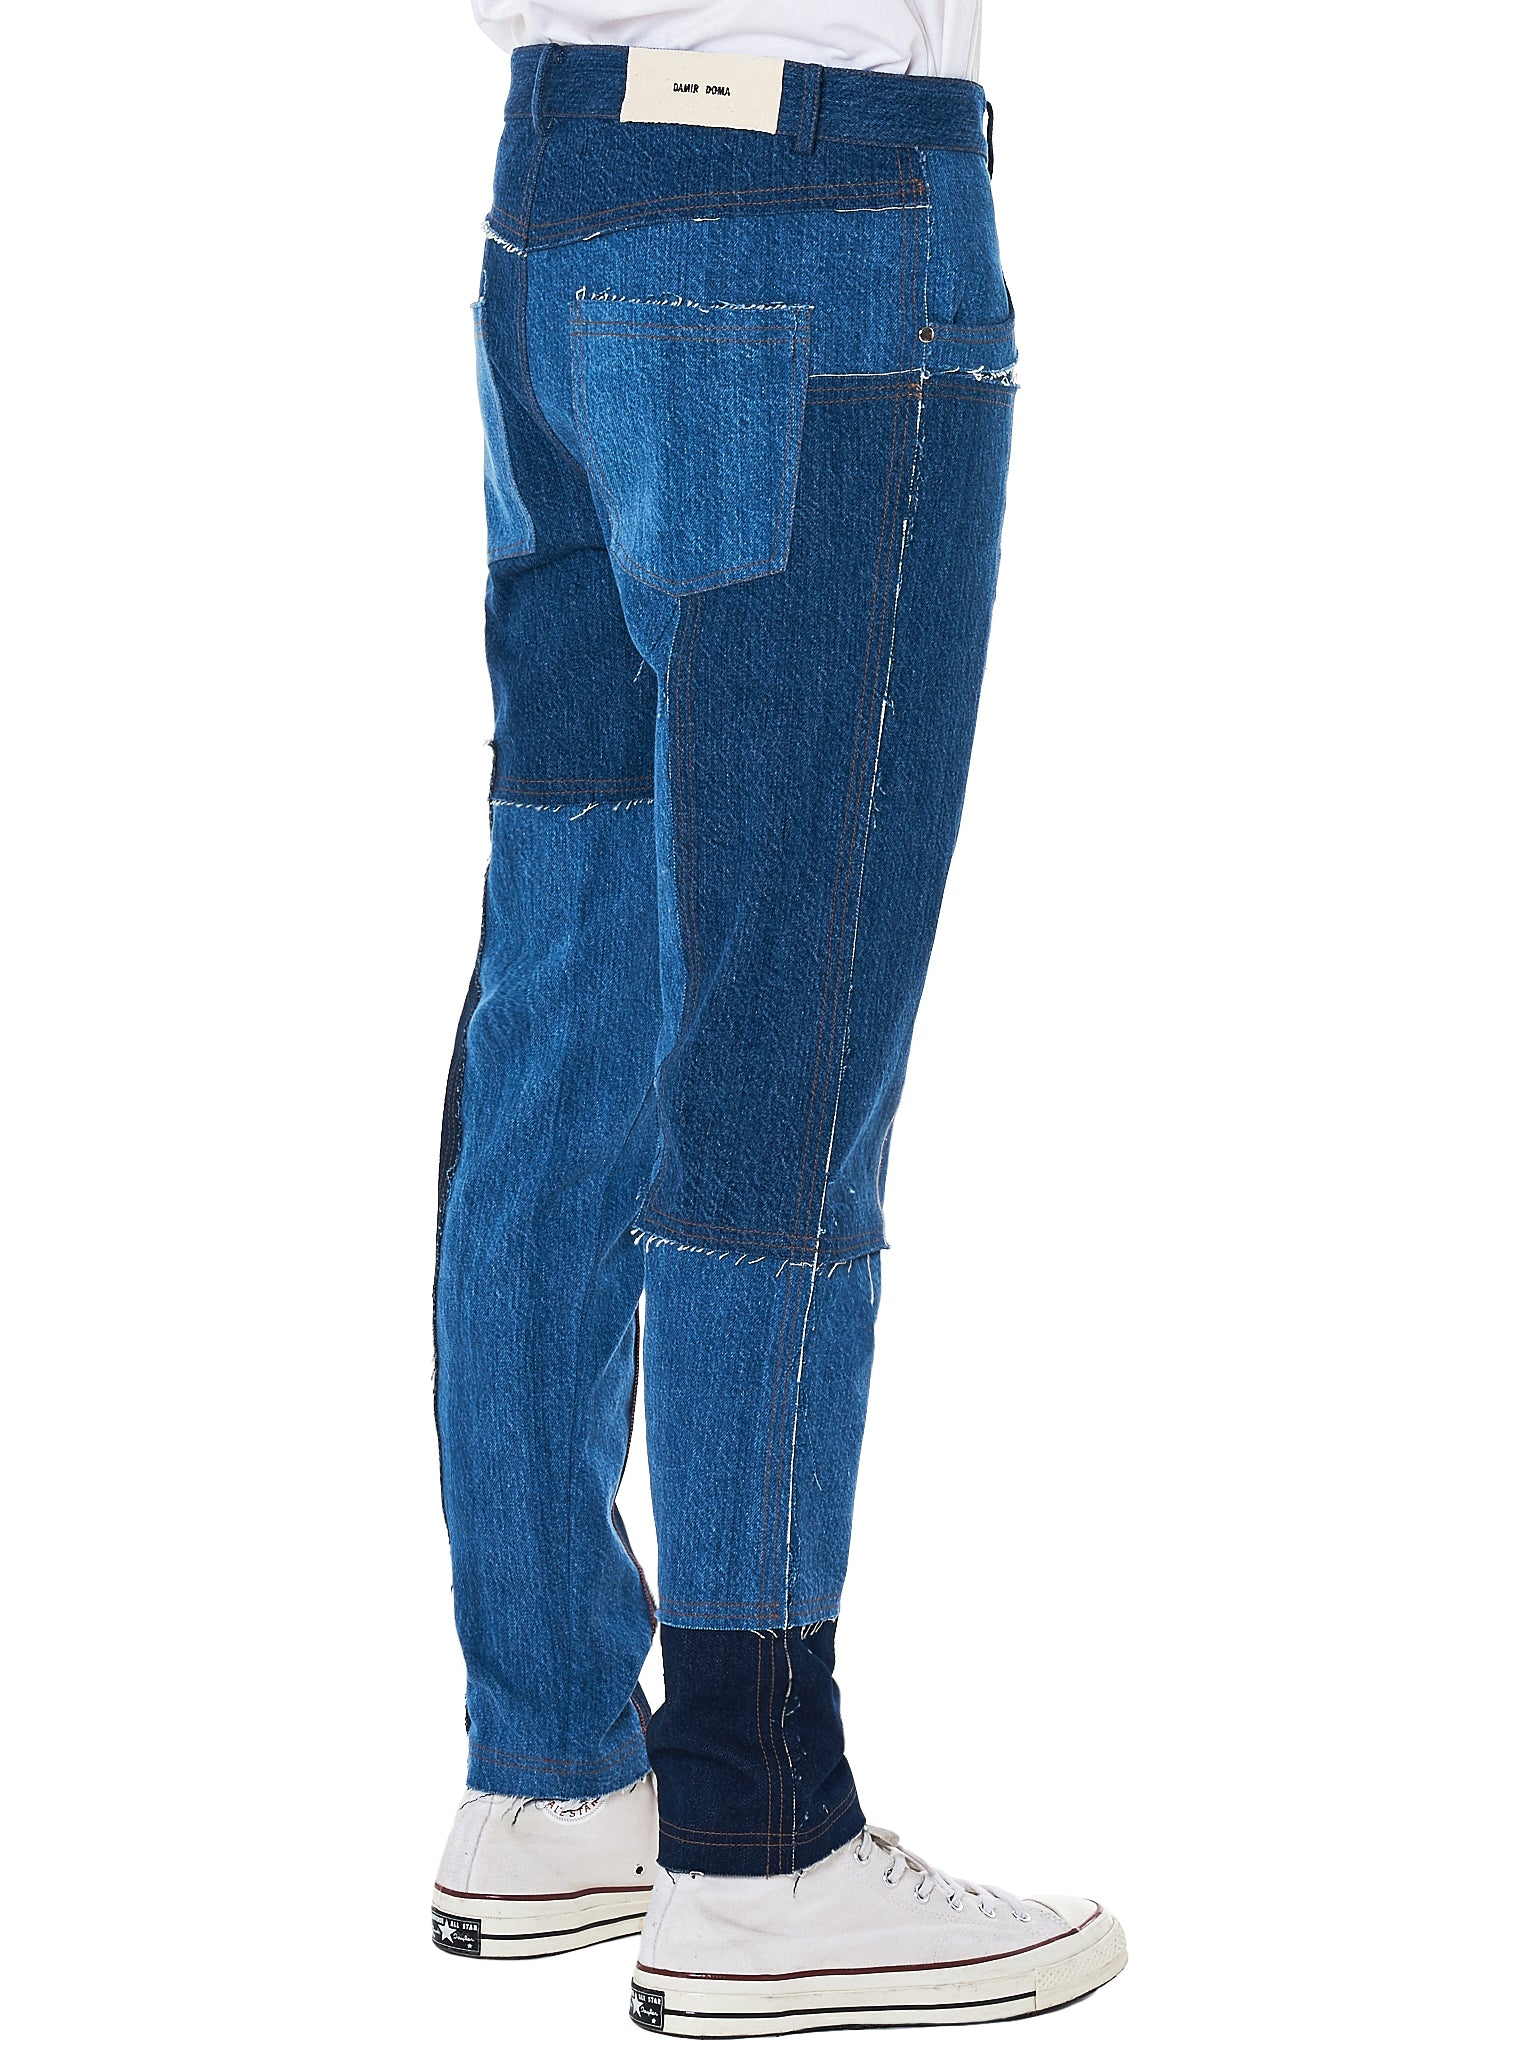 Damir doma patchwork denim - H.Lorenzo side